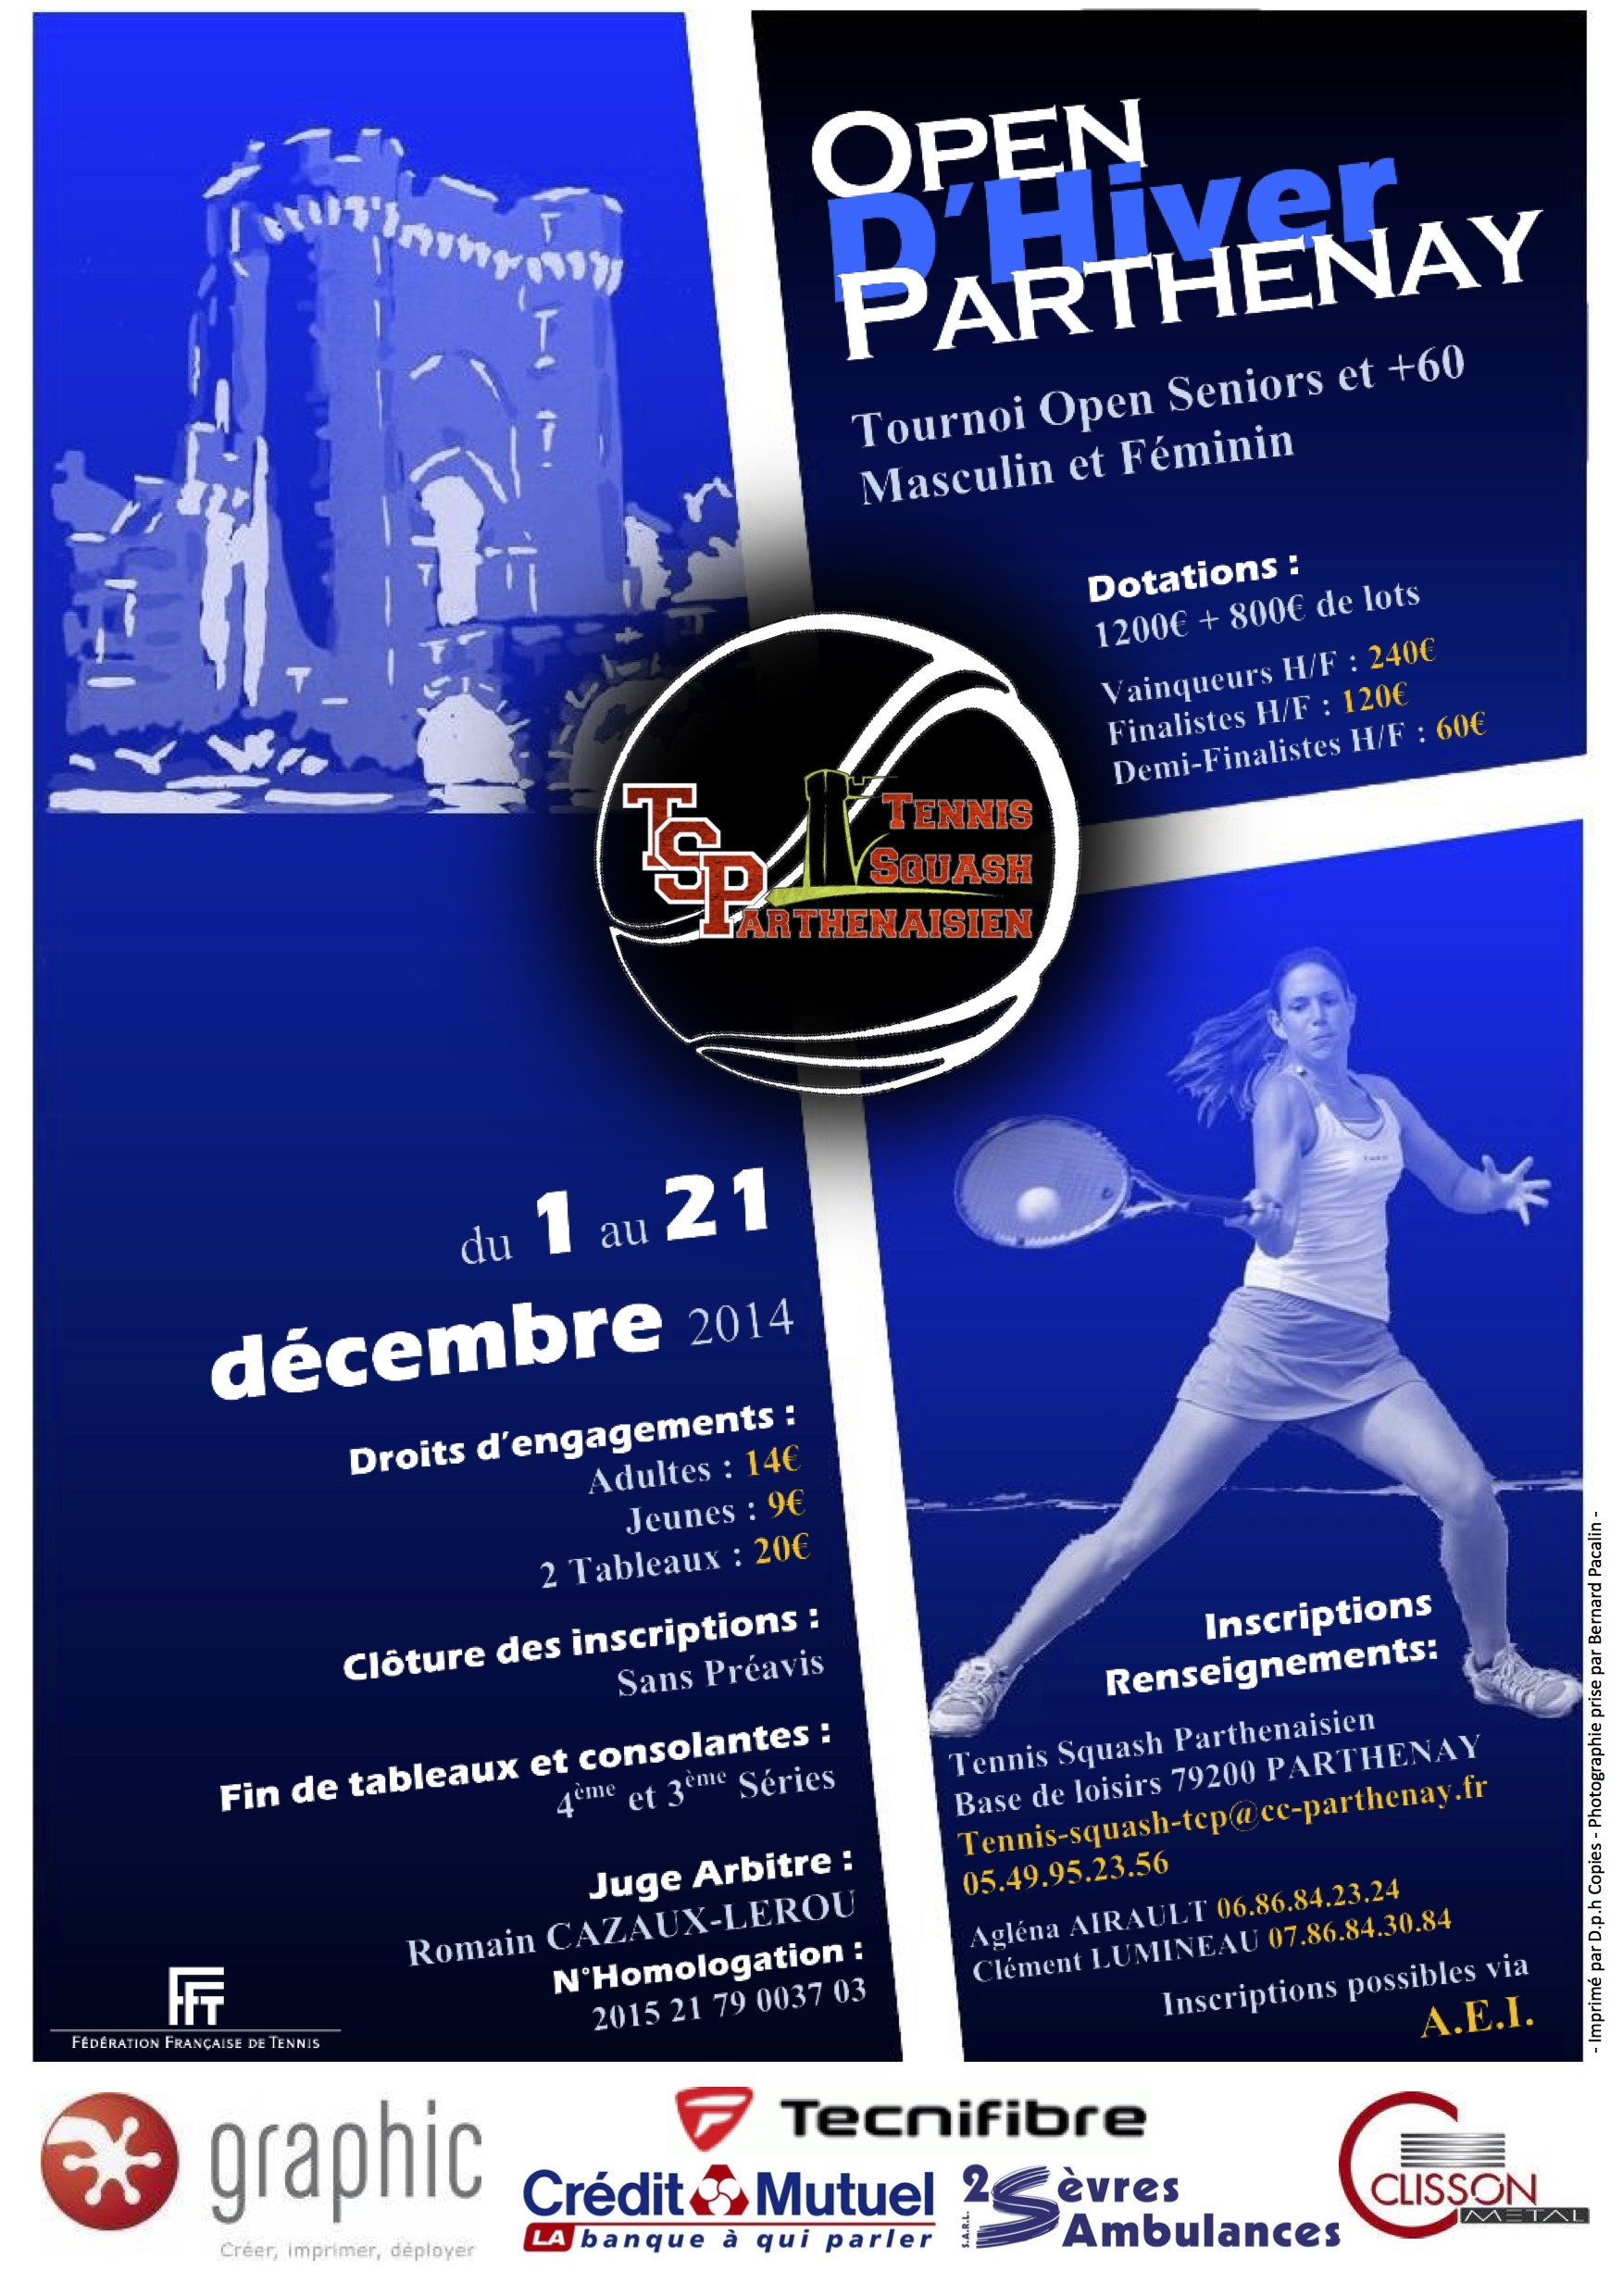 Affiche Tournoi Open Parthenay